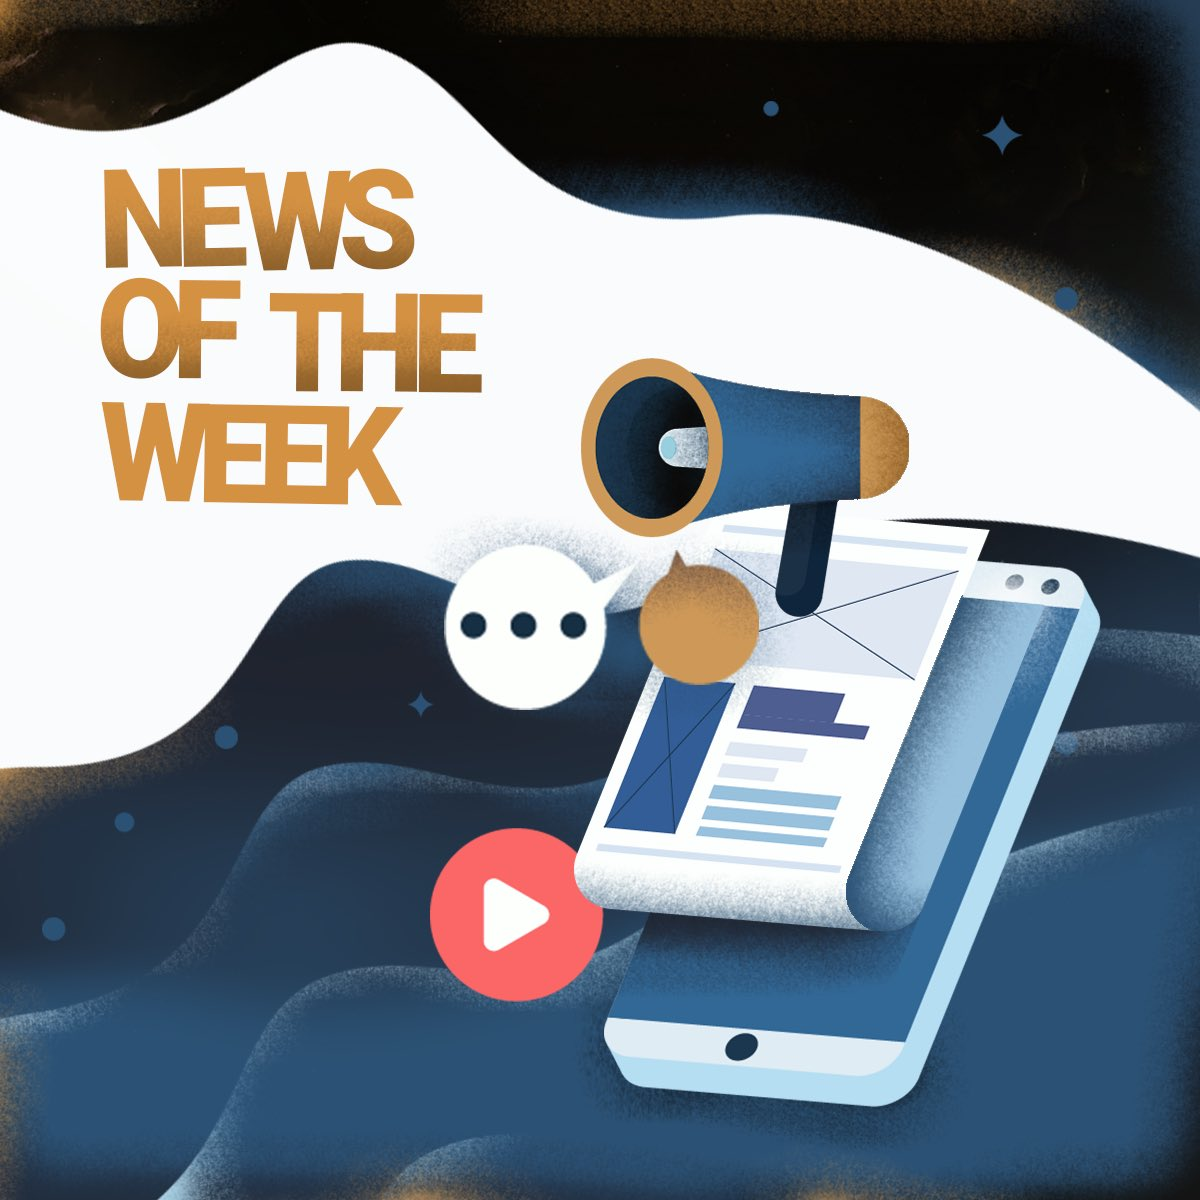 In the end of the week let's check the most important #crypto and blockchain news:  #Bitcoin hits $9,000:  http:// bit.ly/30t7WyJ      Bitcoin SV Looks on Course to Overtake Bitcoin Cash:  http:// bit.ly/2QZLw51    <br>http://pic.twitter.com/jUJEdyHqUV